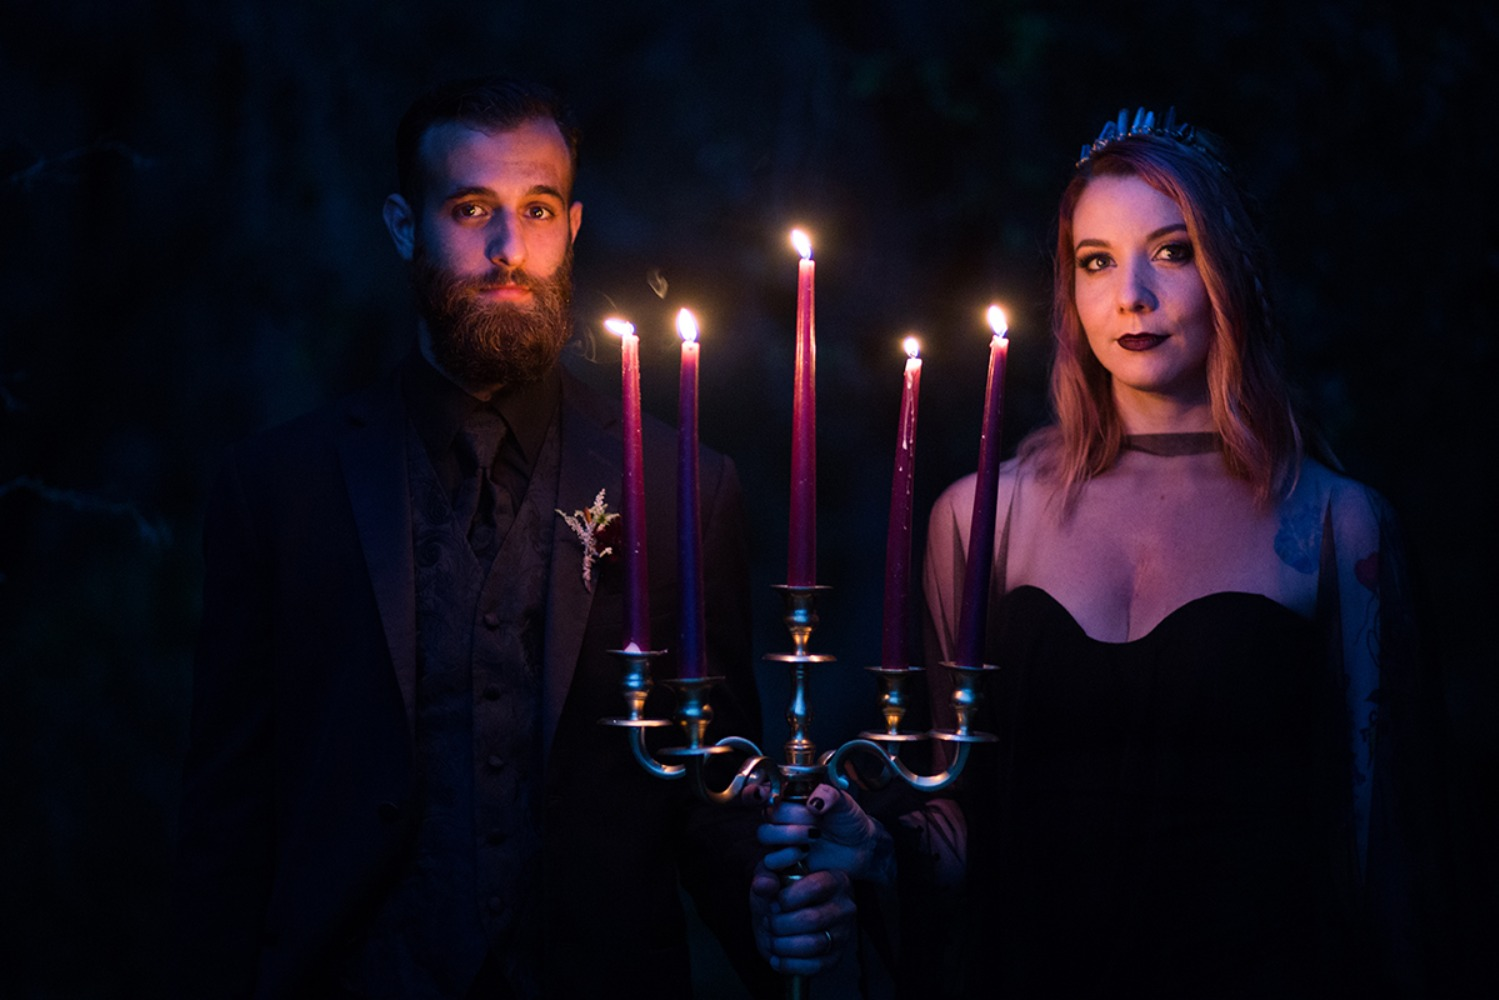 dramatic wedding photos with candles